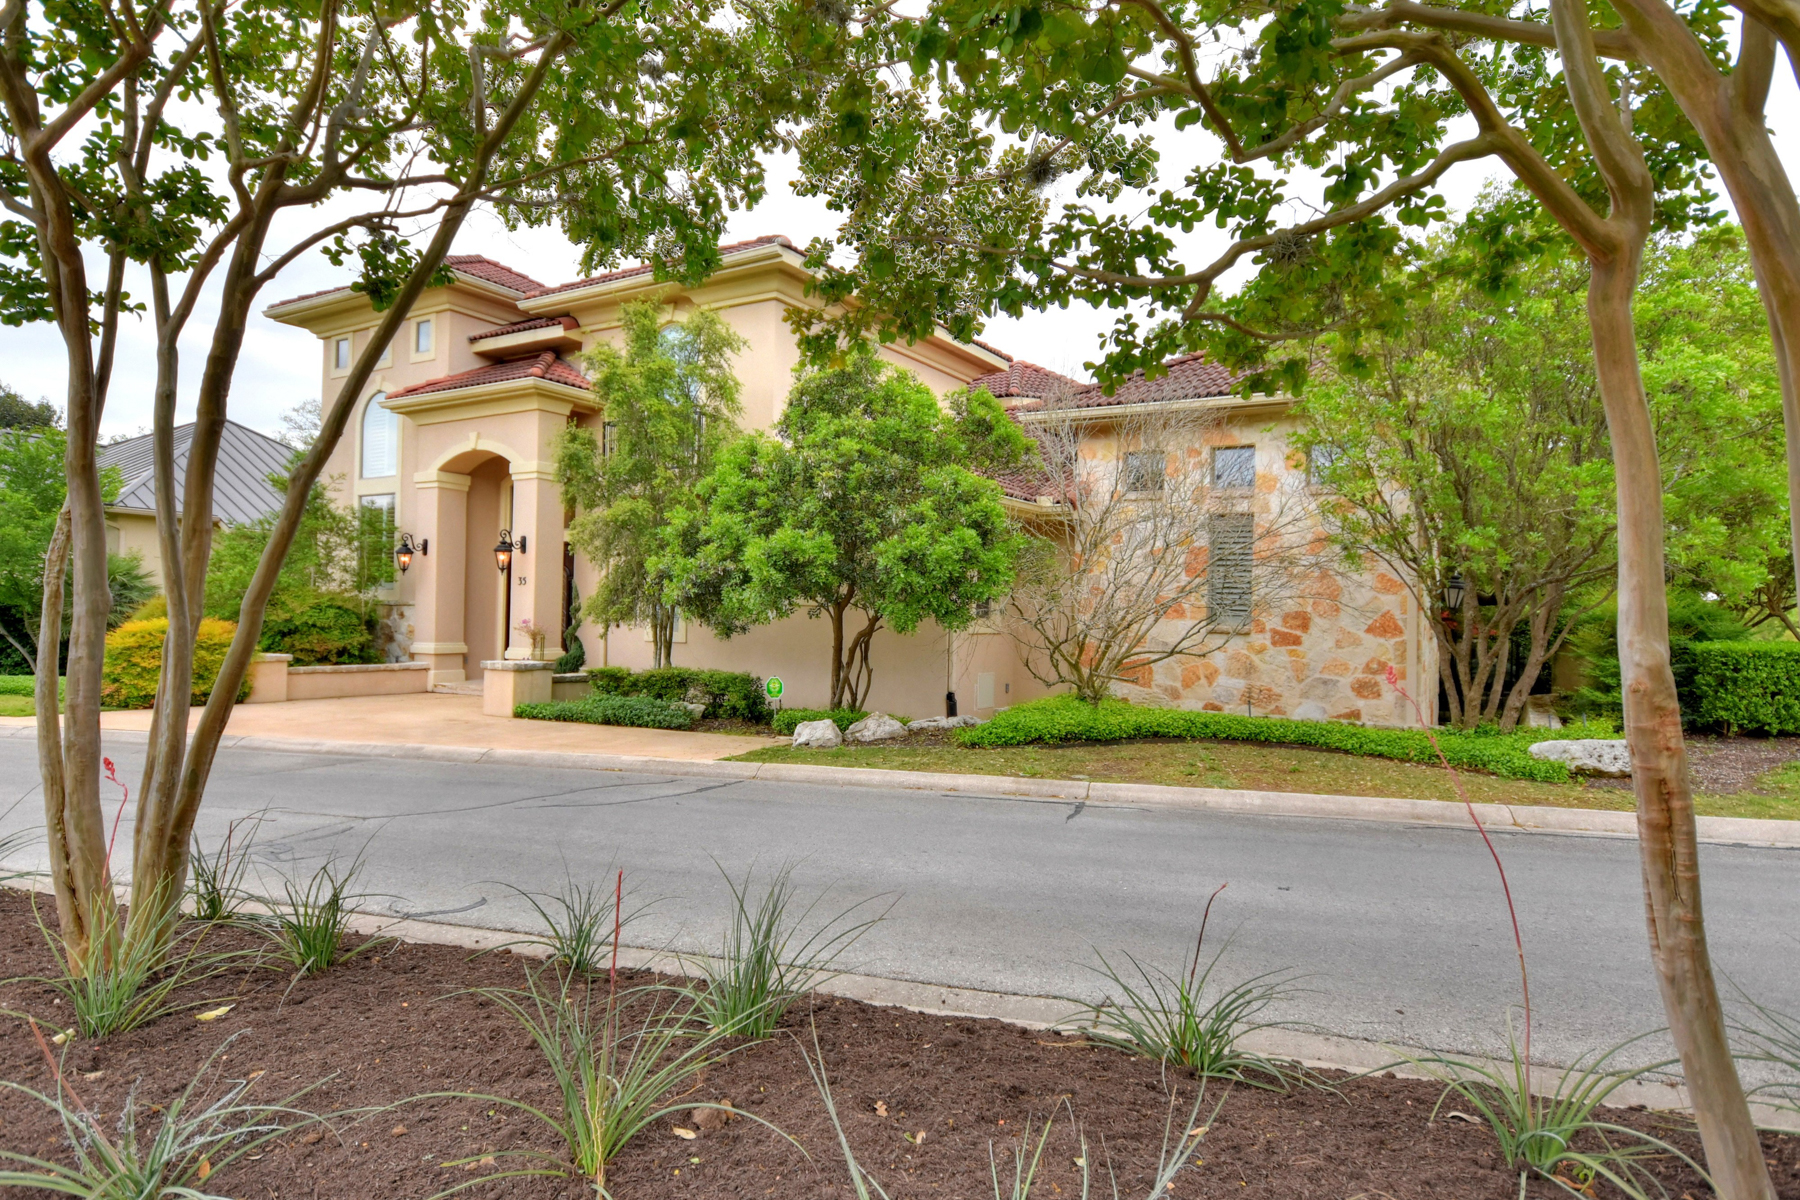 Additional photo for property listing at Immaculate Home in The Dominion 35 Worthsham San Antonio, Texas 78257 Estados Unidos